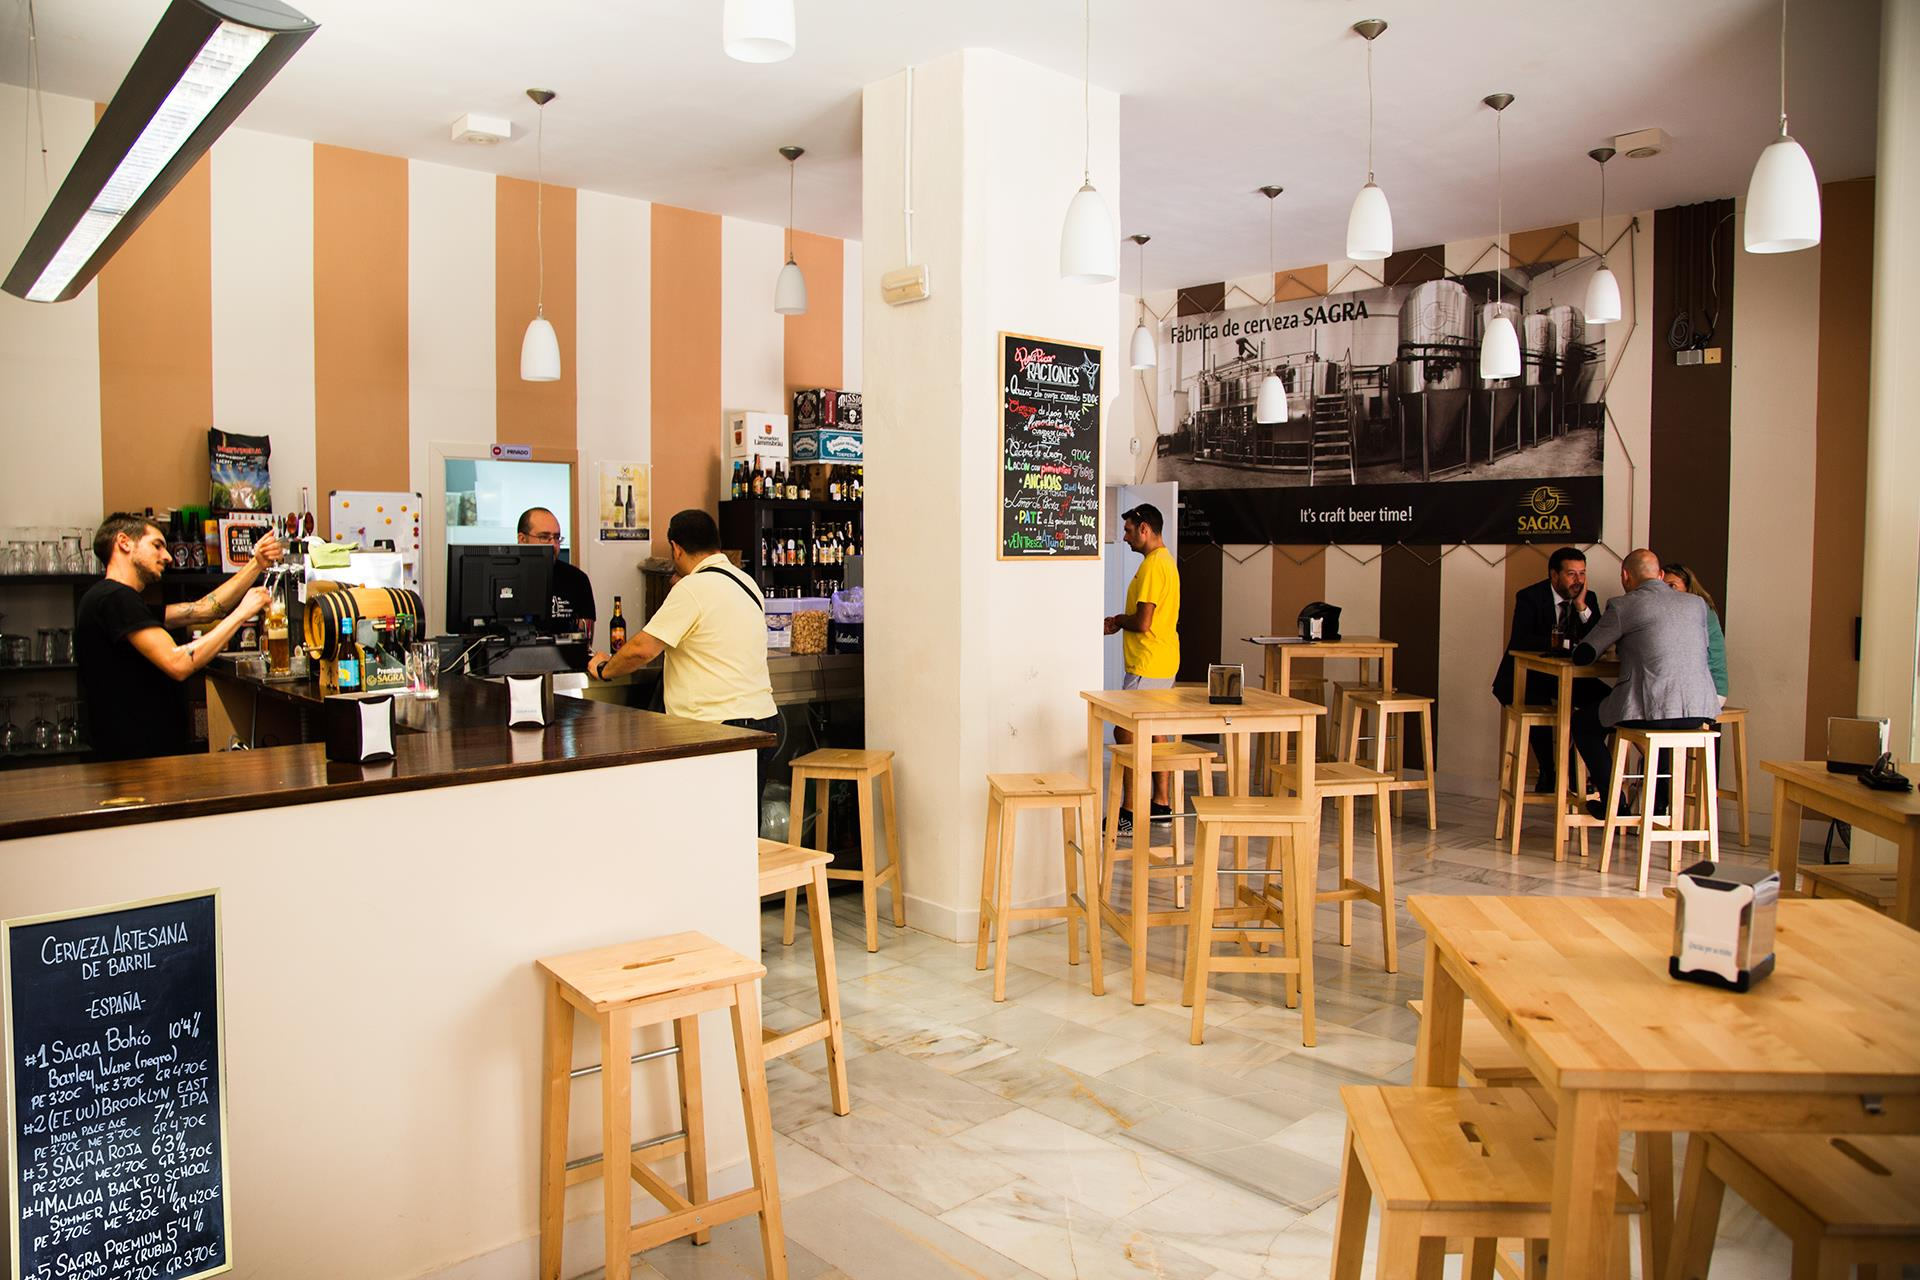 Cerveceria Arte Y Sana Malaga The Best Places To Drink Craft Beer In Malaga